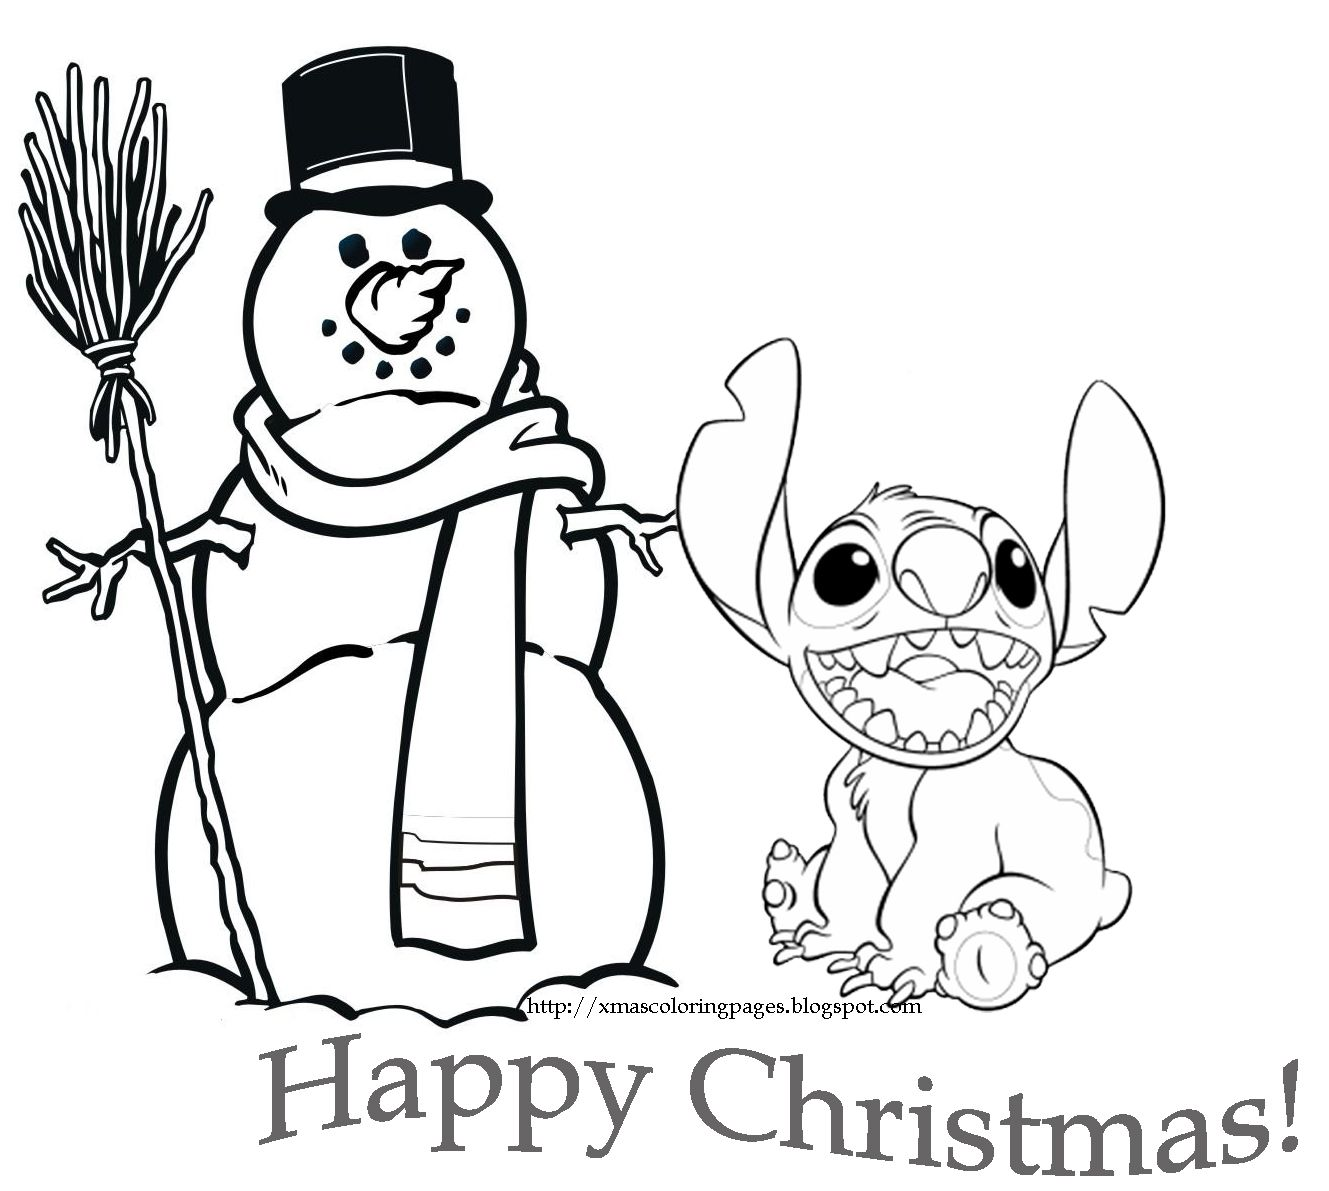 Christmas Coloring Pages Disney With Pin By Jimmy Nail On Pinterest